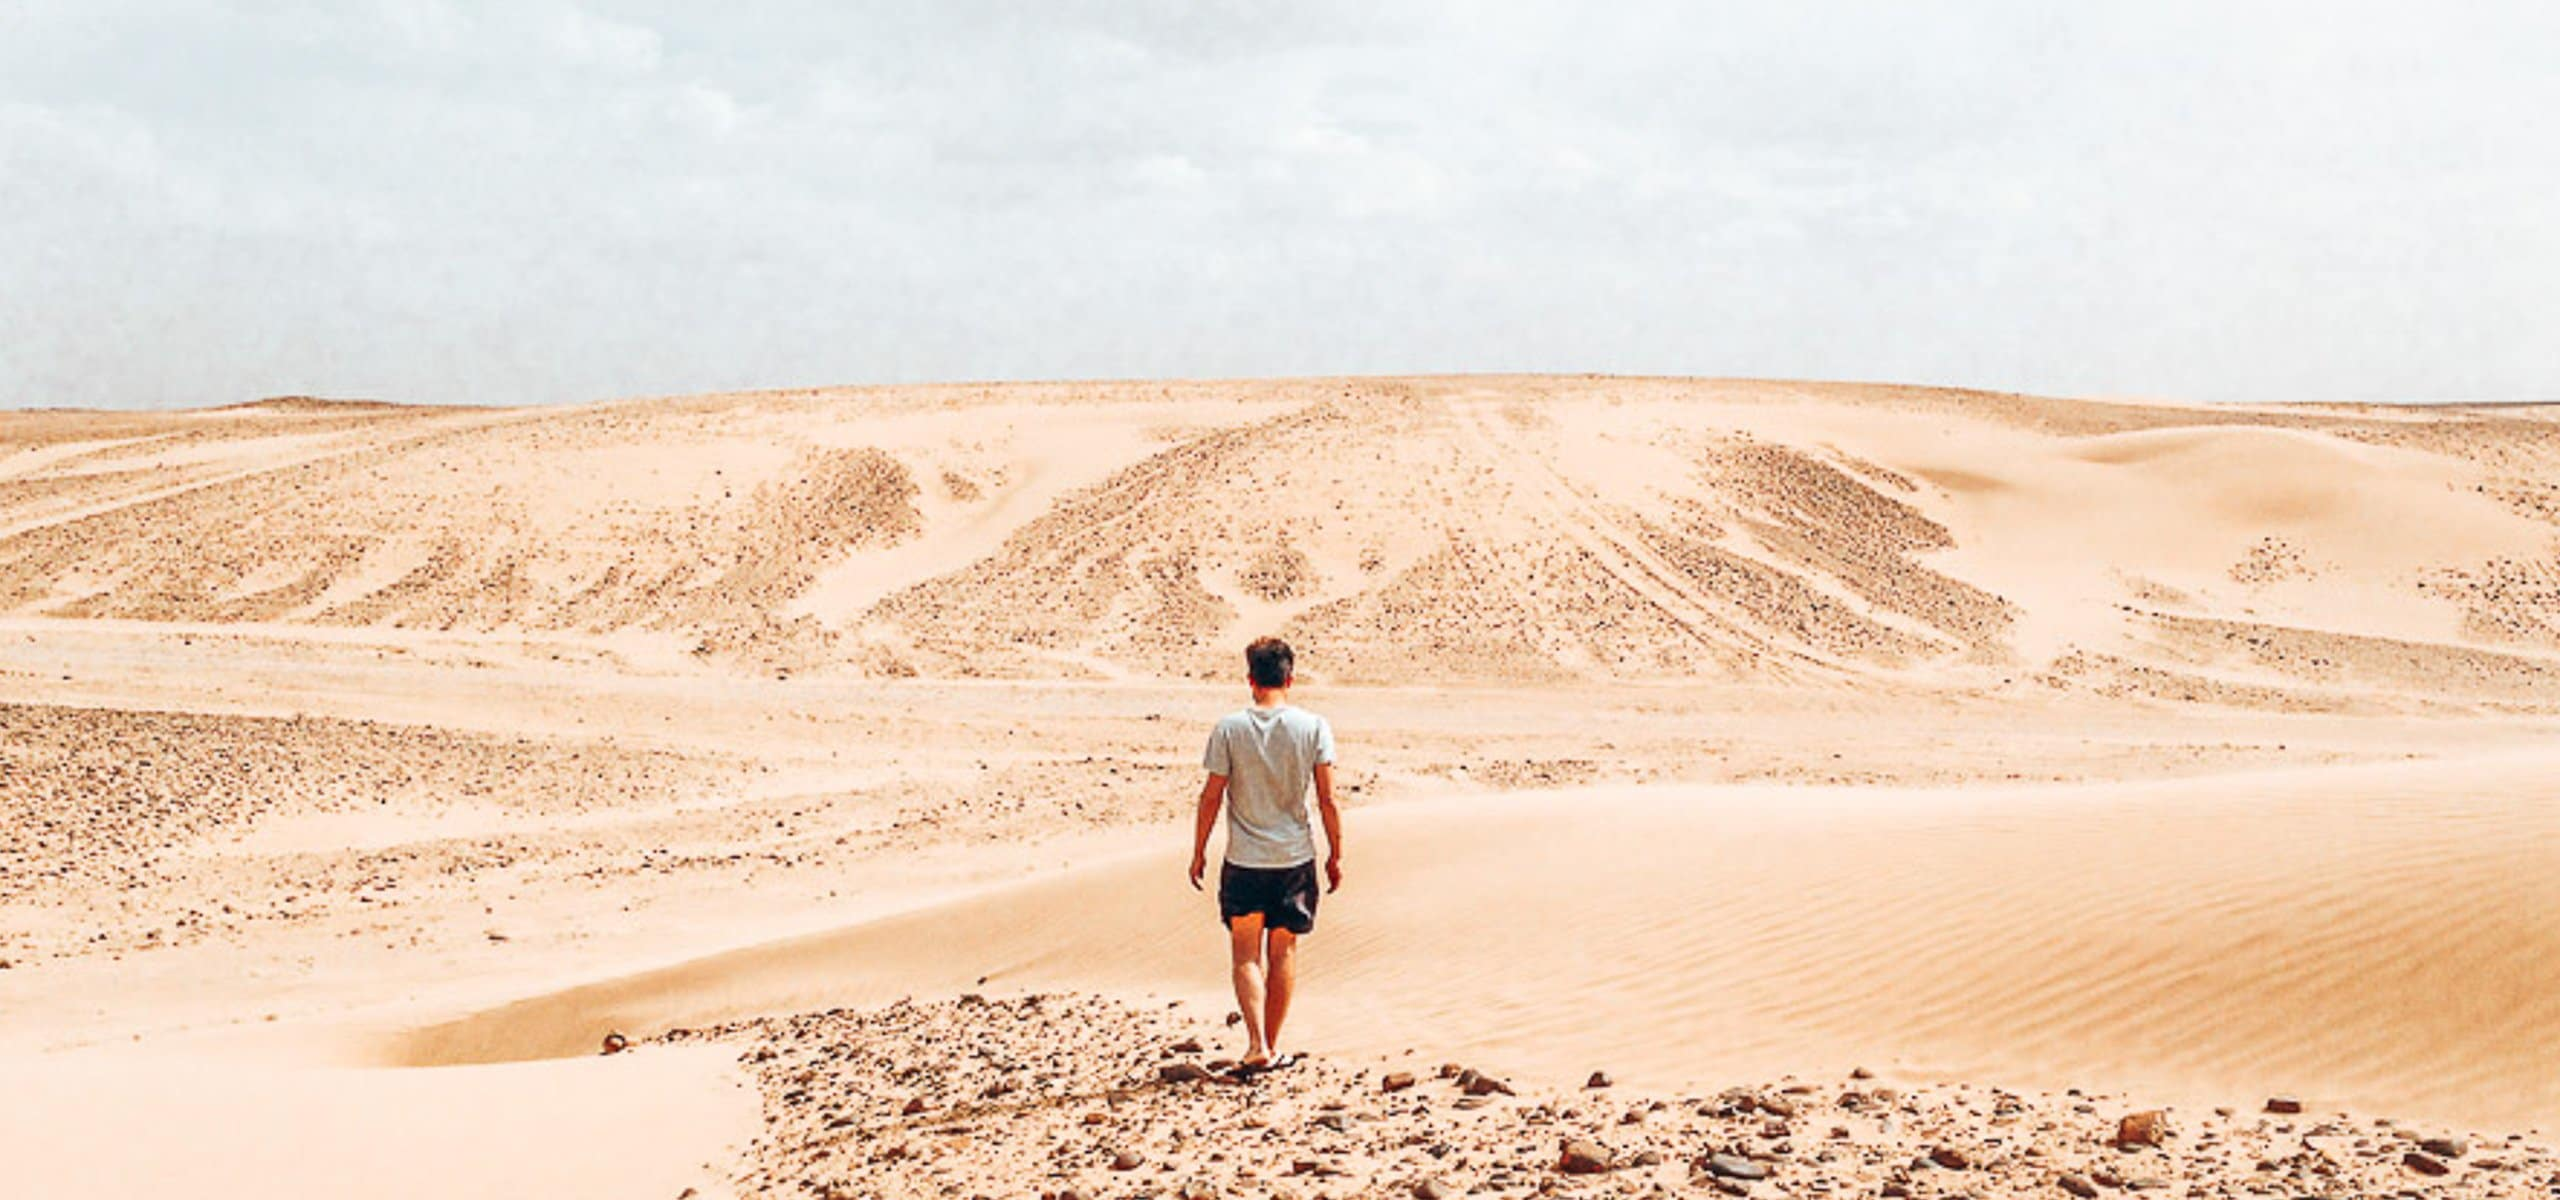 A man walks in the middle of the Sahara Desert, Morocco